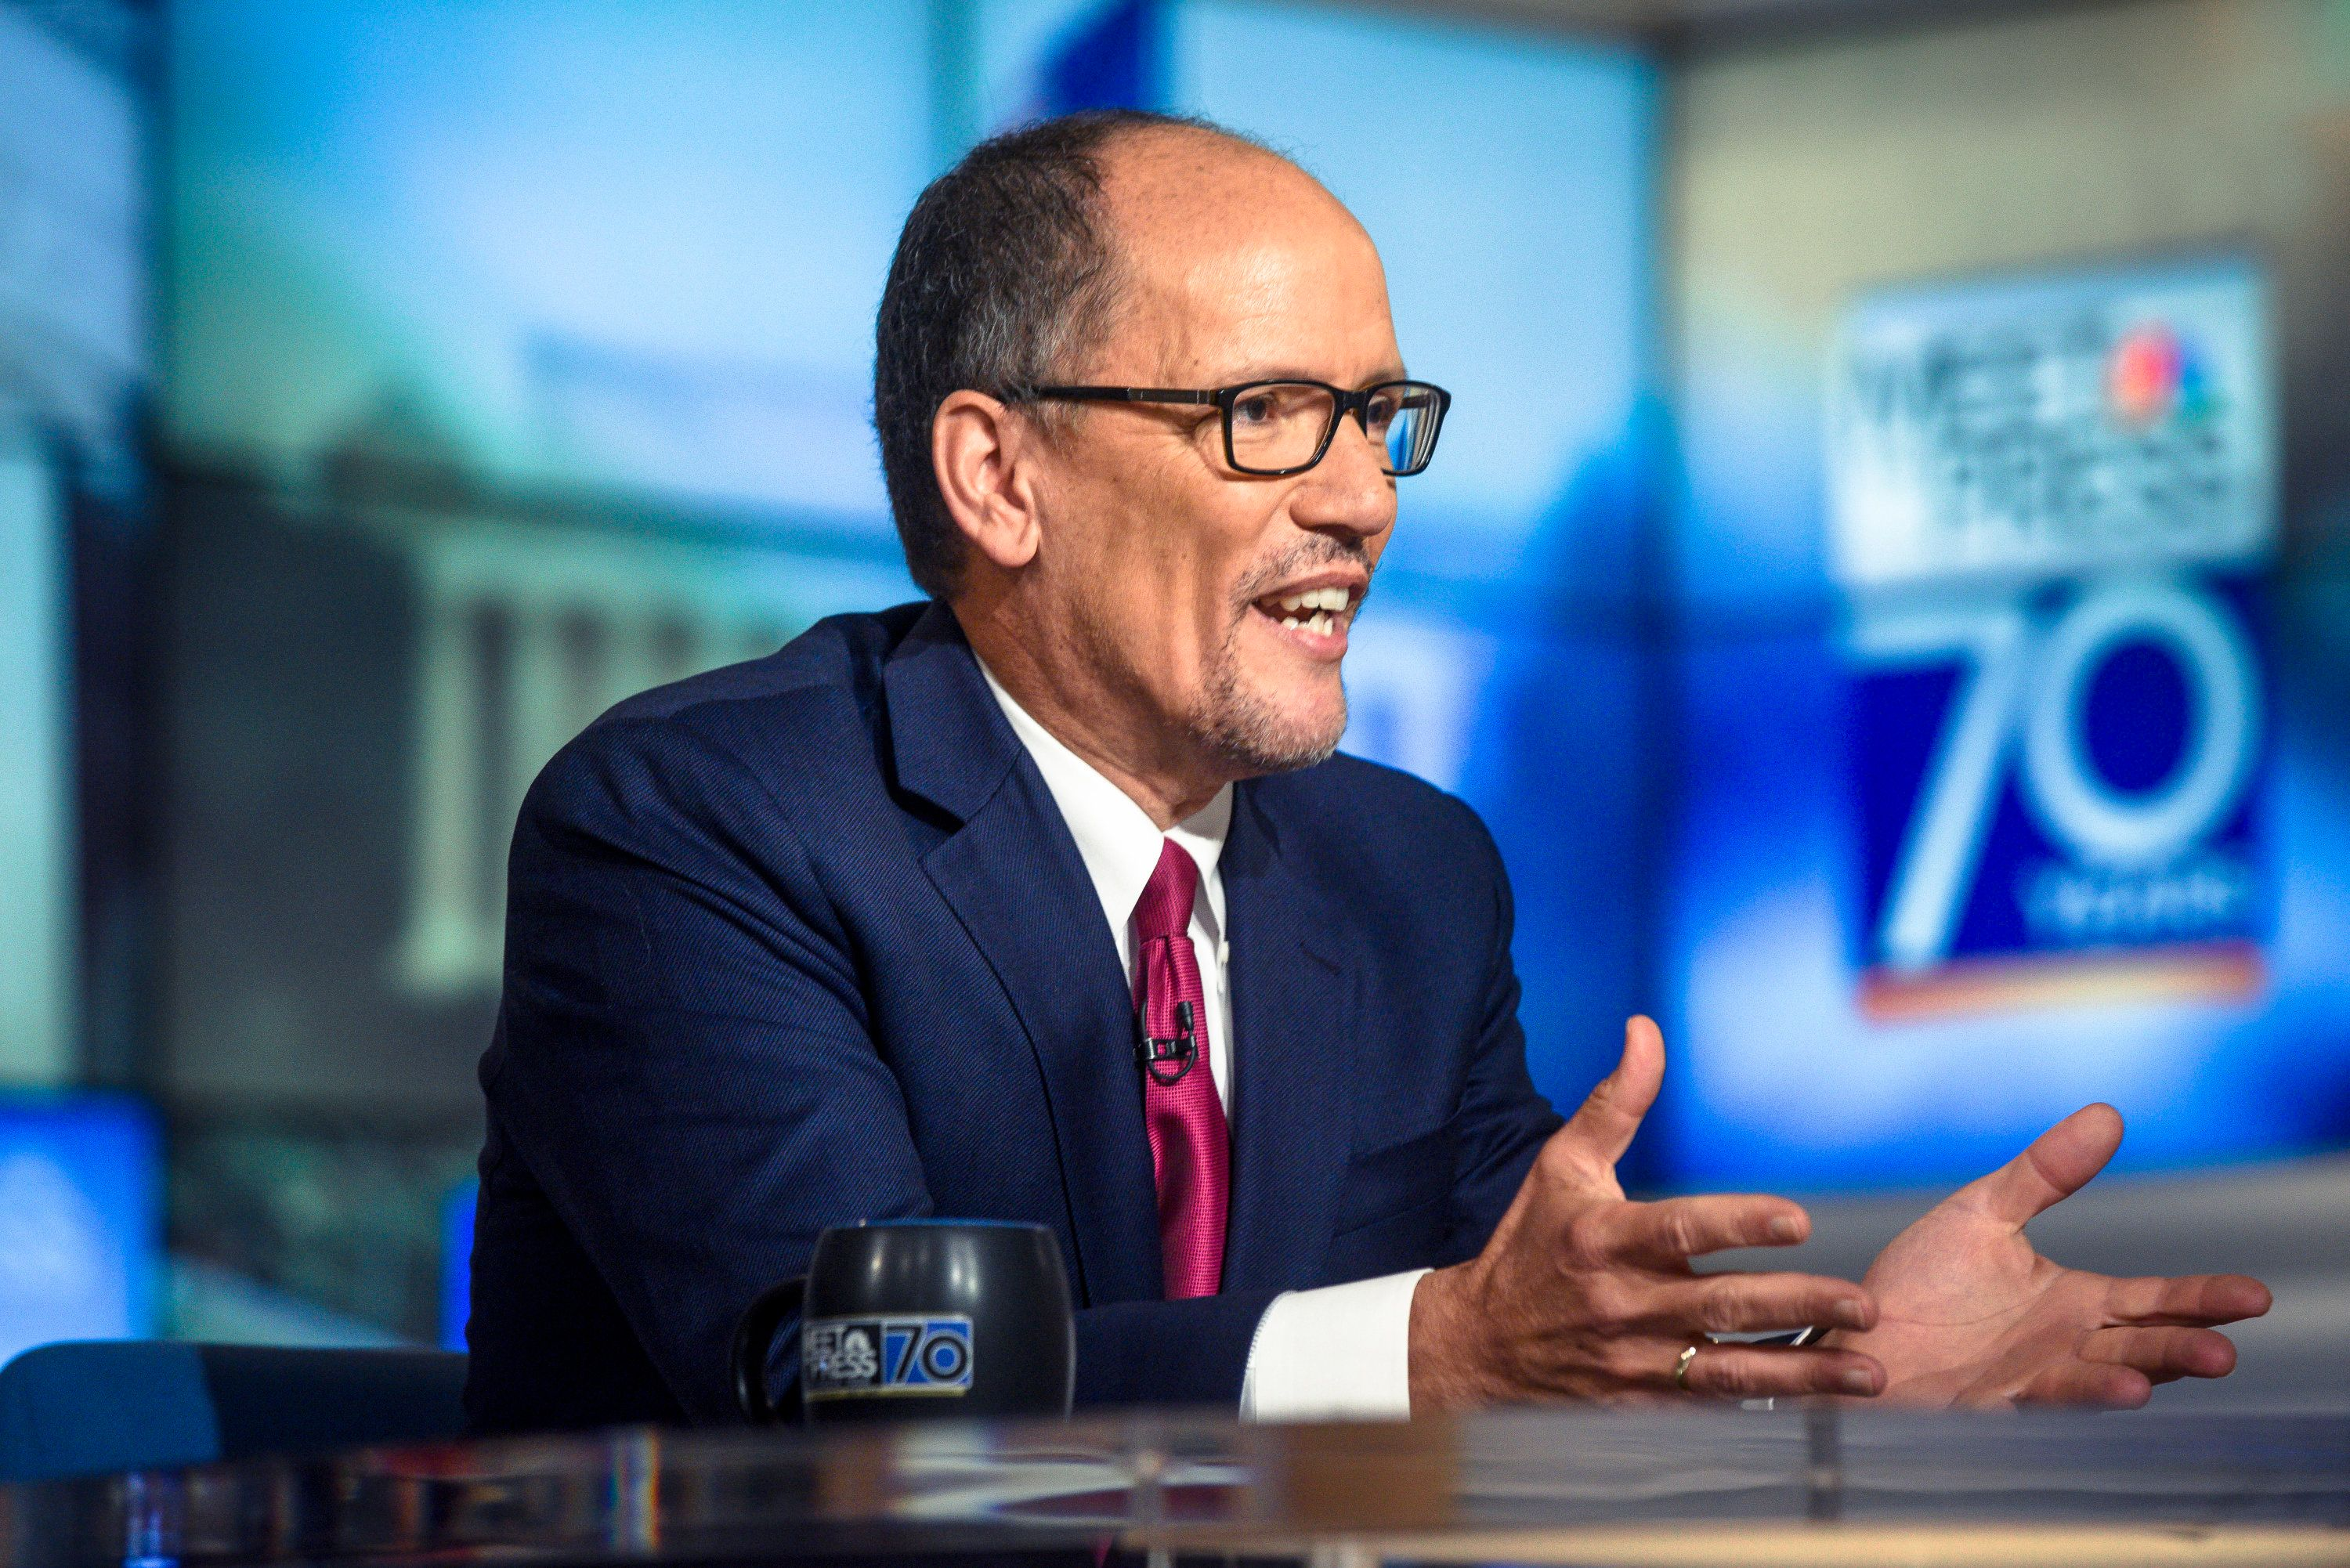 Tom Perez was elected chairman of the Democratic National Committee in February amid uncertainty about the party's commitment